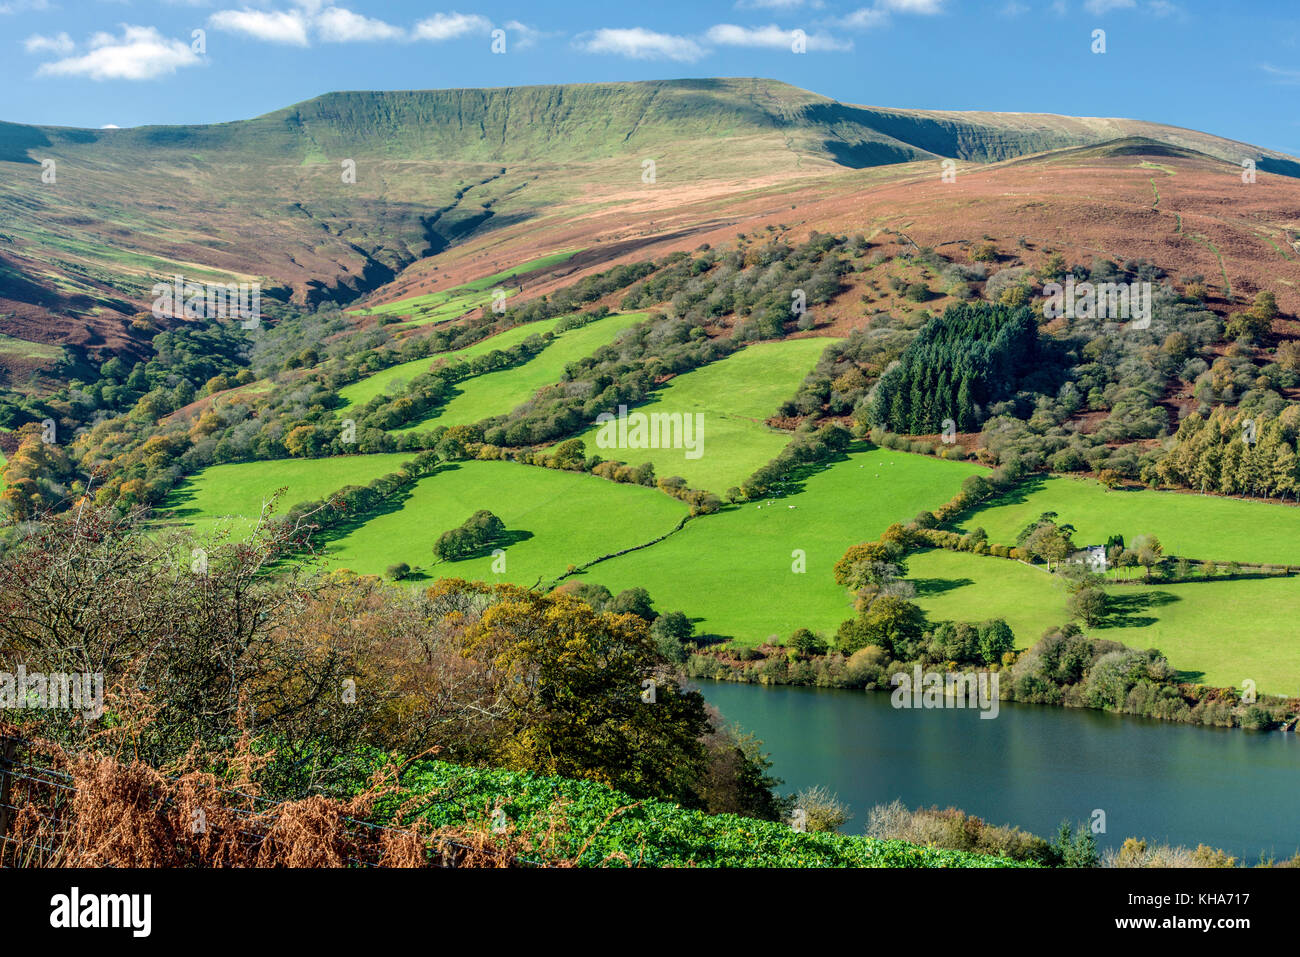 Looking across to the height of Waun Rydd Brecon Beacons south Wales on a bright sunny October day - Stock Image